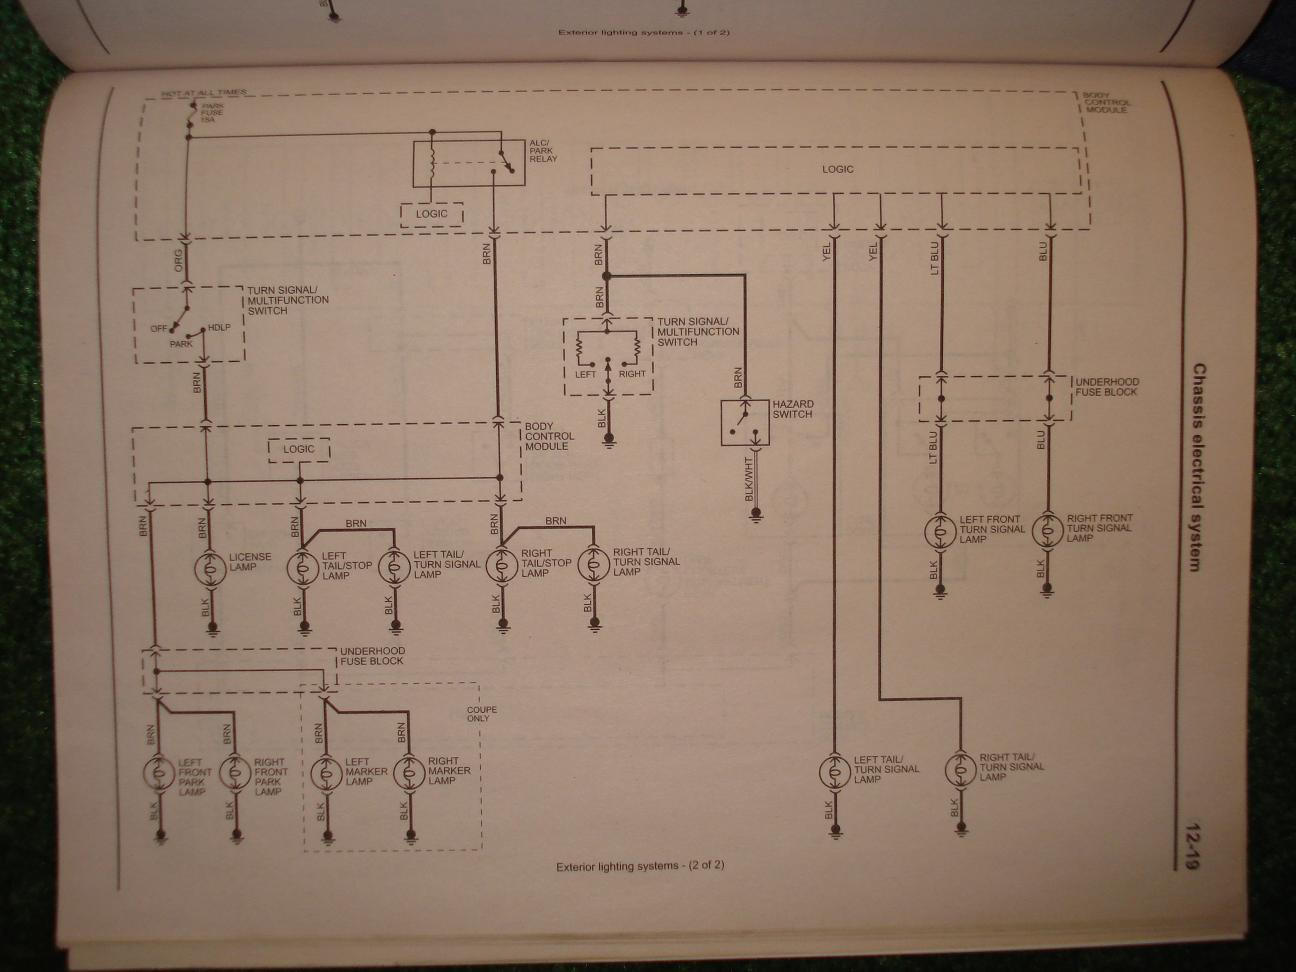 Signal Flasher Wiring Diagram Led Turn Signal Flasher Wiring Diagram